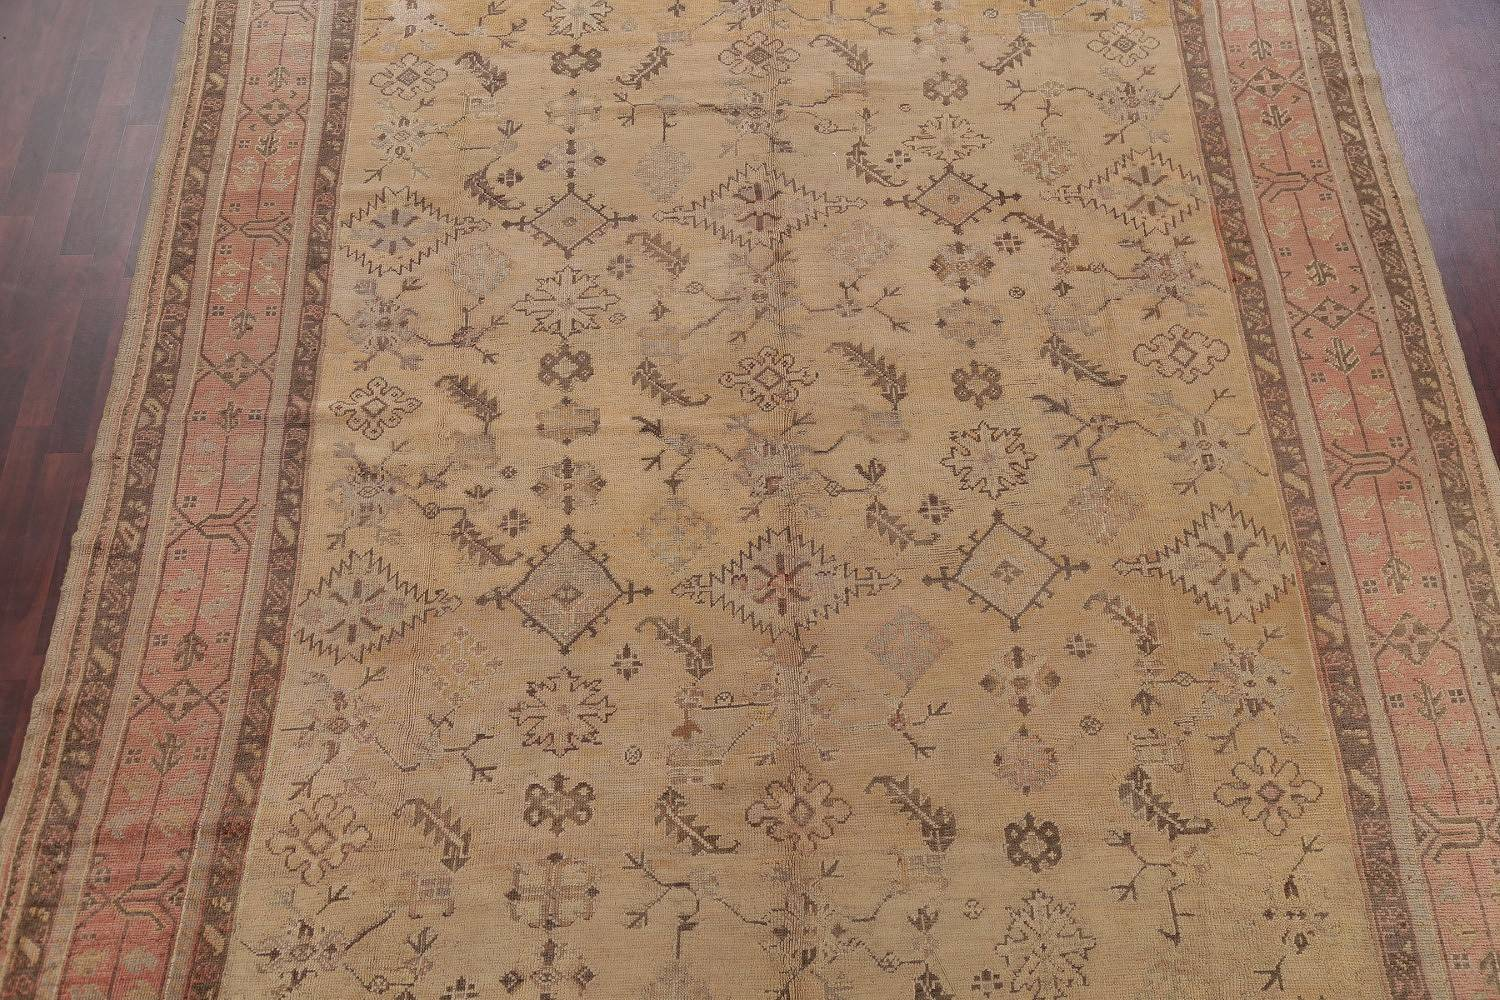 Pre-1900 Antique All-Over Geometric Muted Color Oushak Turkish Area Rug 10x13 image 3